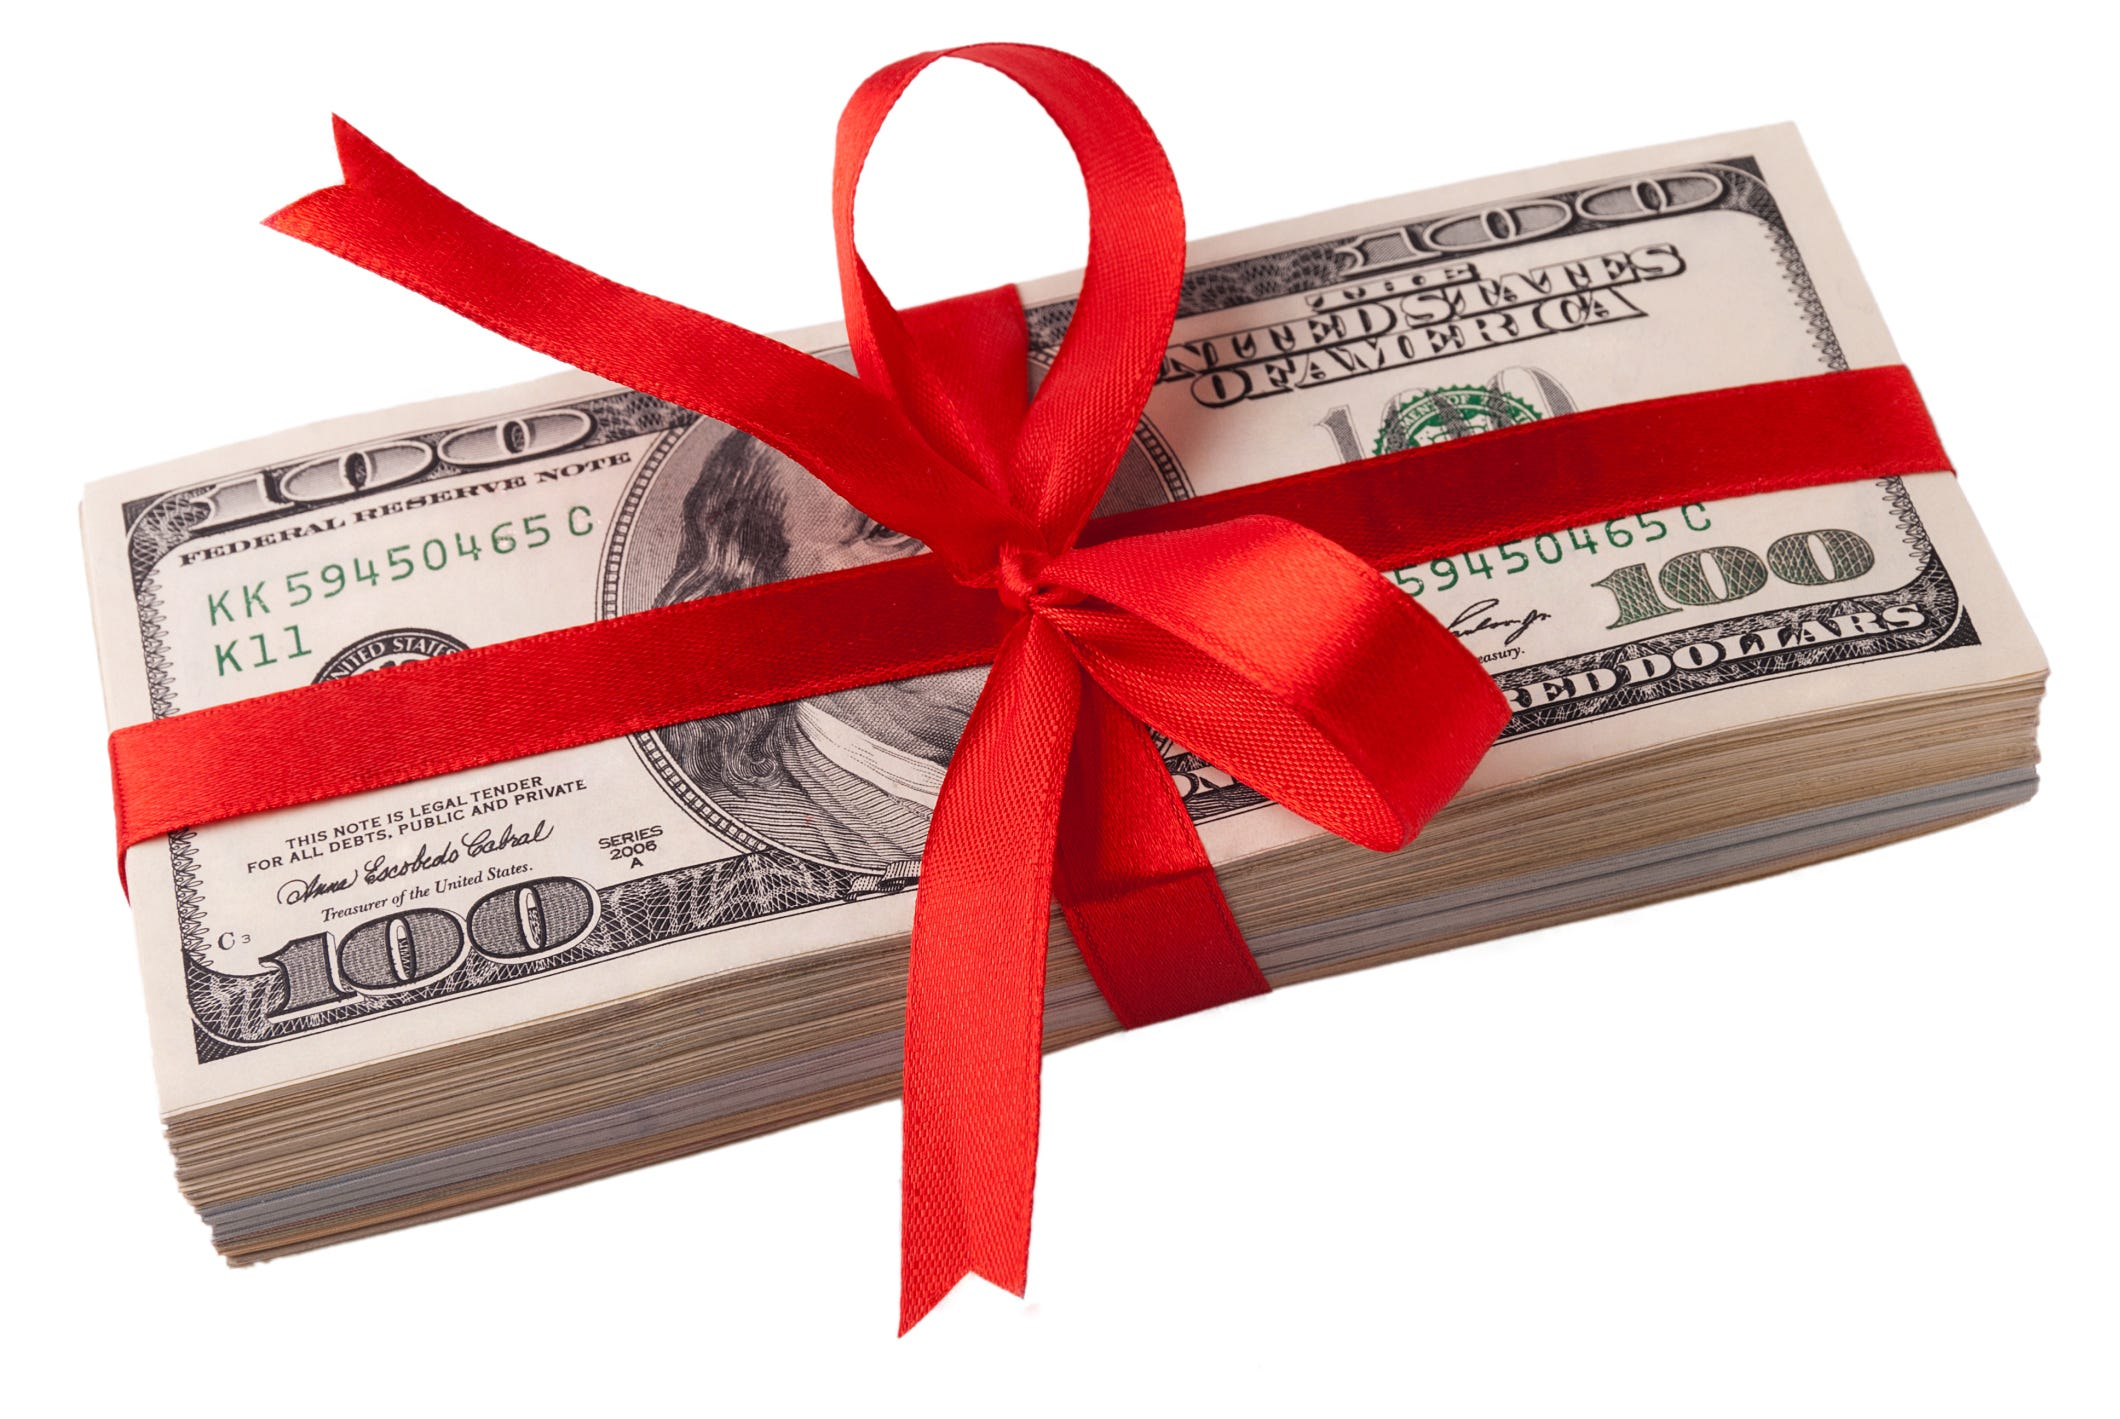 With end of year bonus, it's smart to splurge a little, save a lot